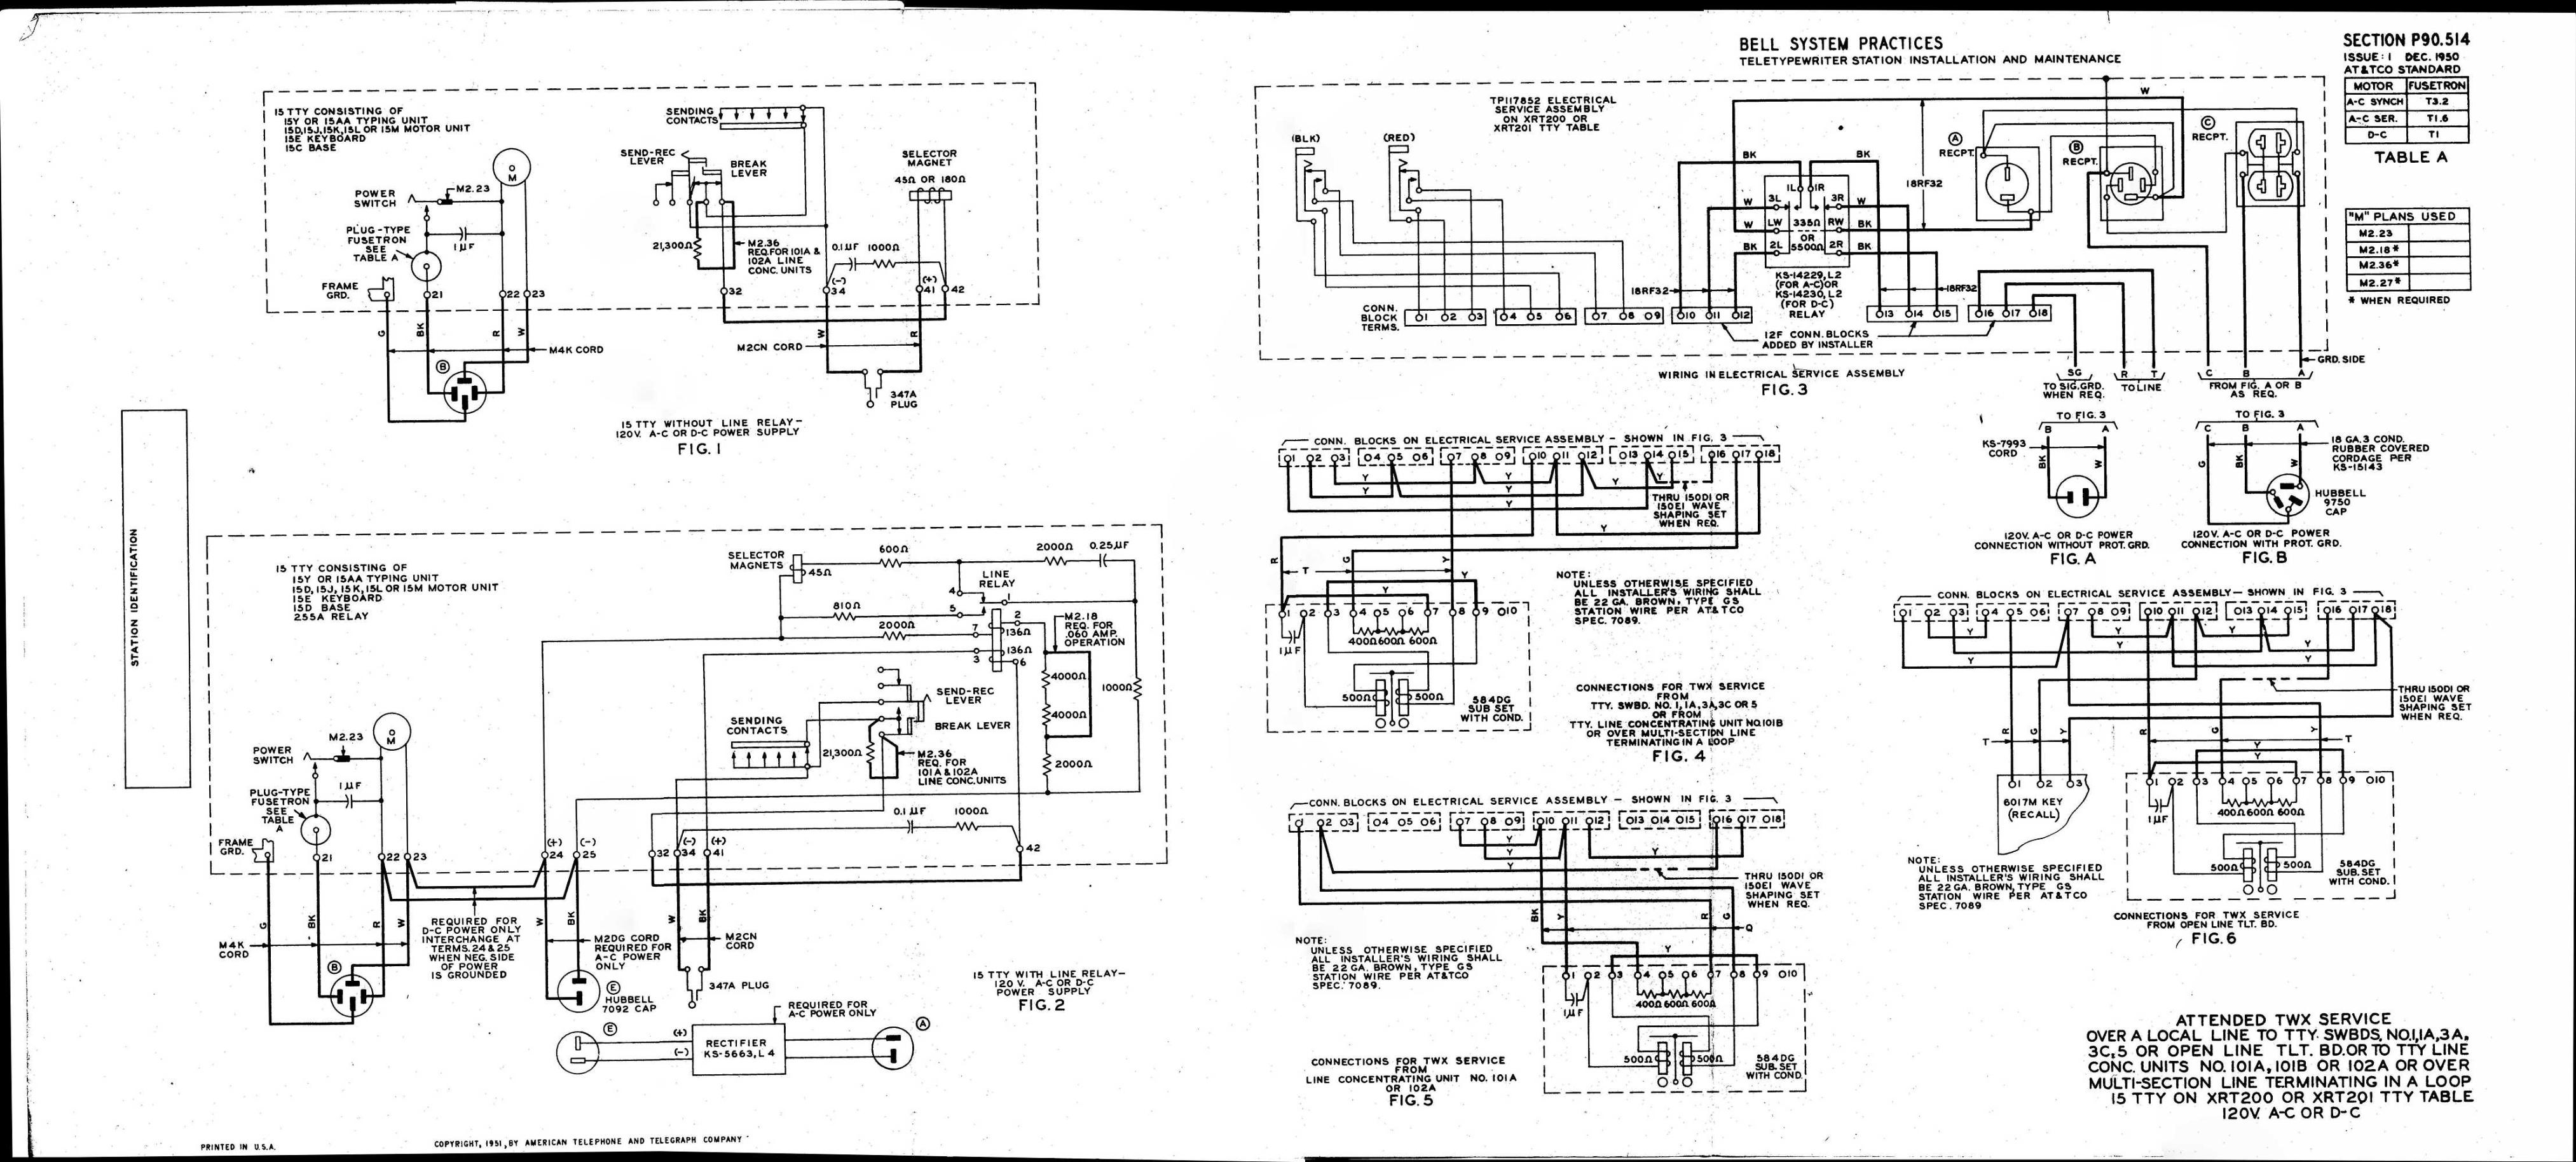 Teletype Wiring Diagrams And Schematics Western Electric 500 Diagram P90514 Link